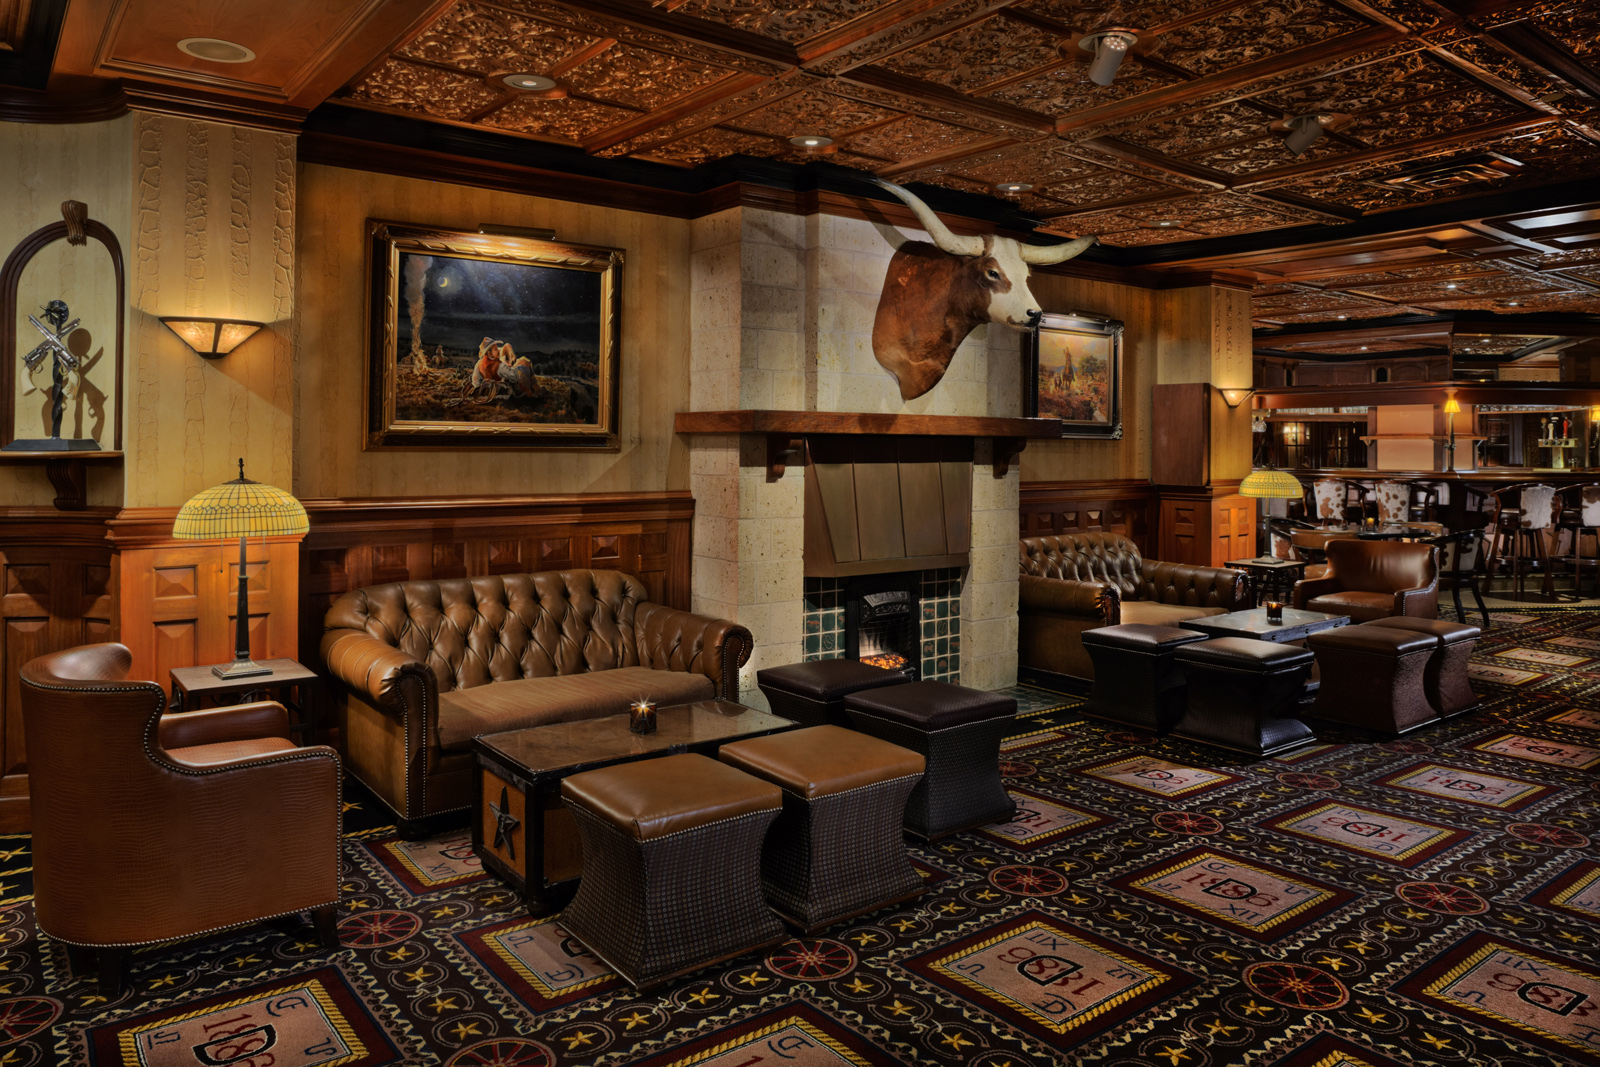 Of course the Driskill bar has a Texas longhorn. Photo courtesy of Driskill hotel